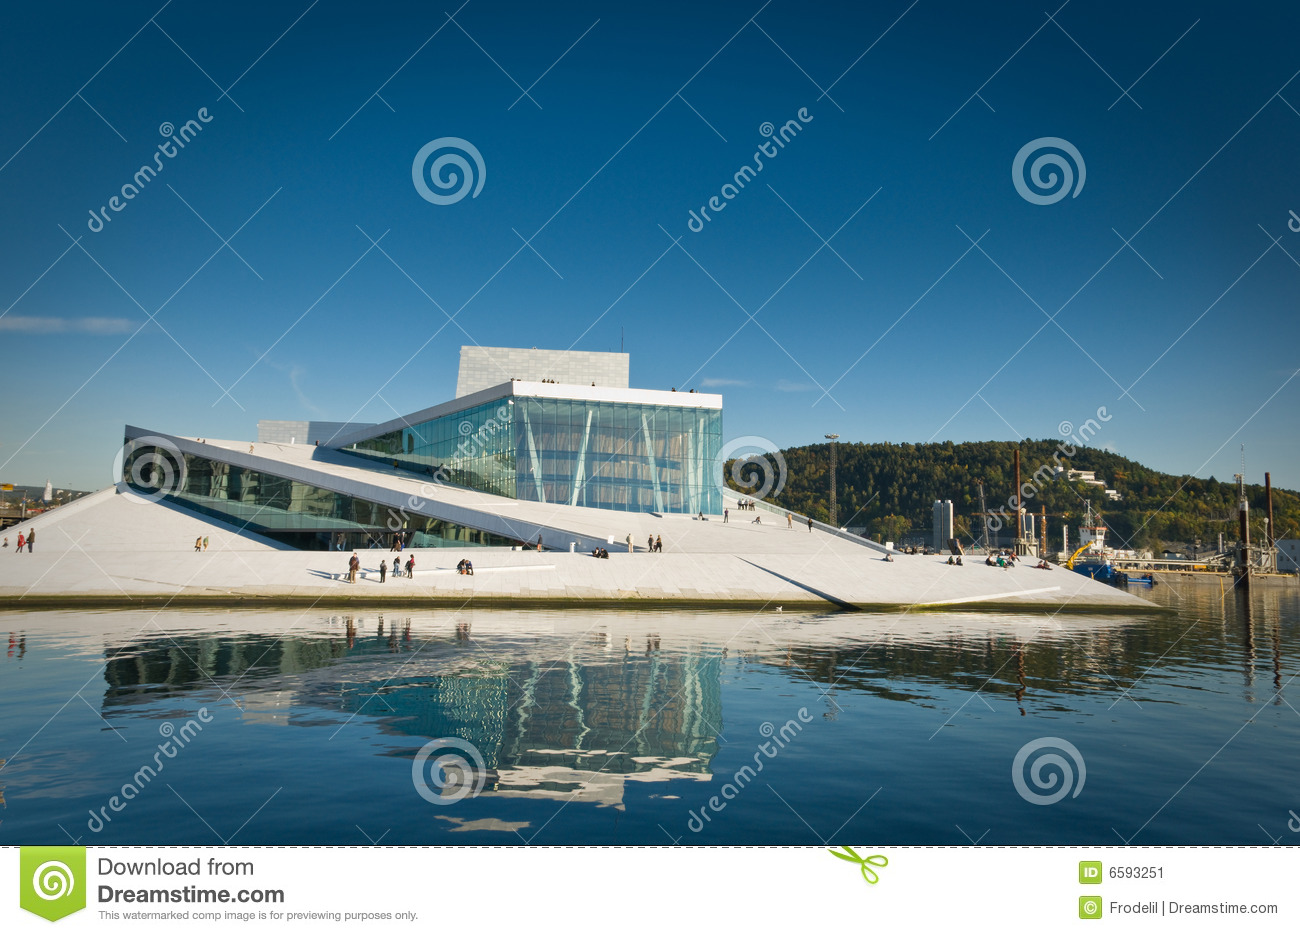 The Opera in Oslo, Norway